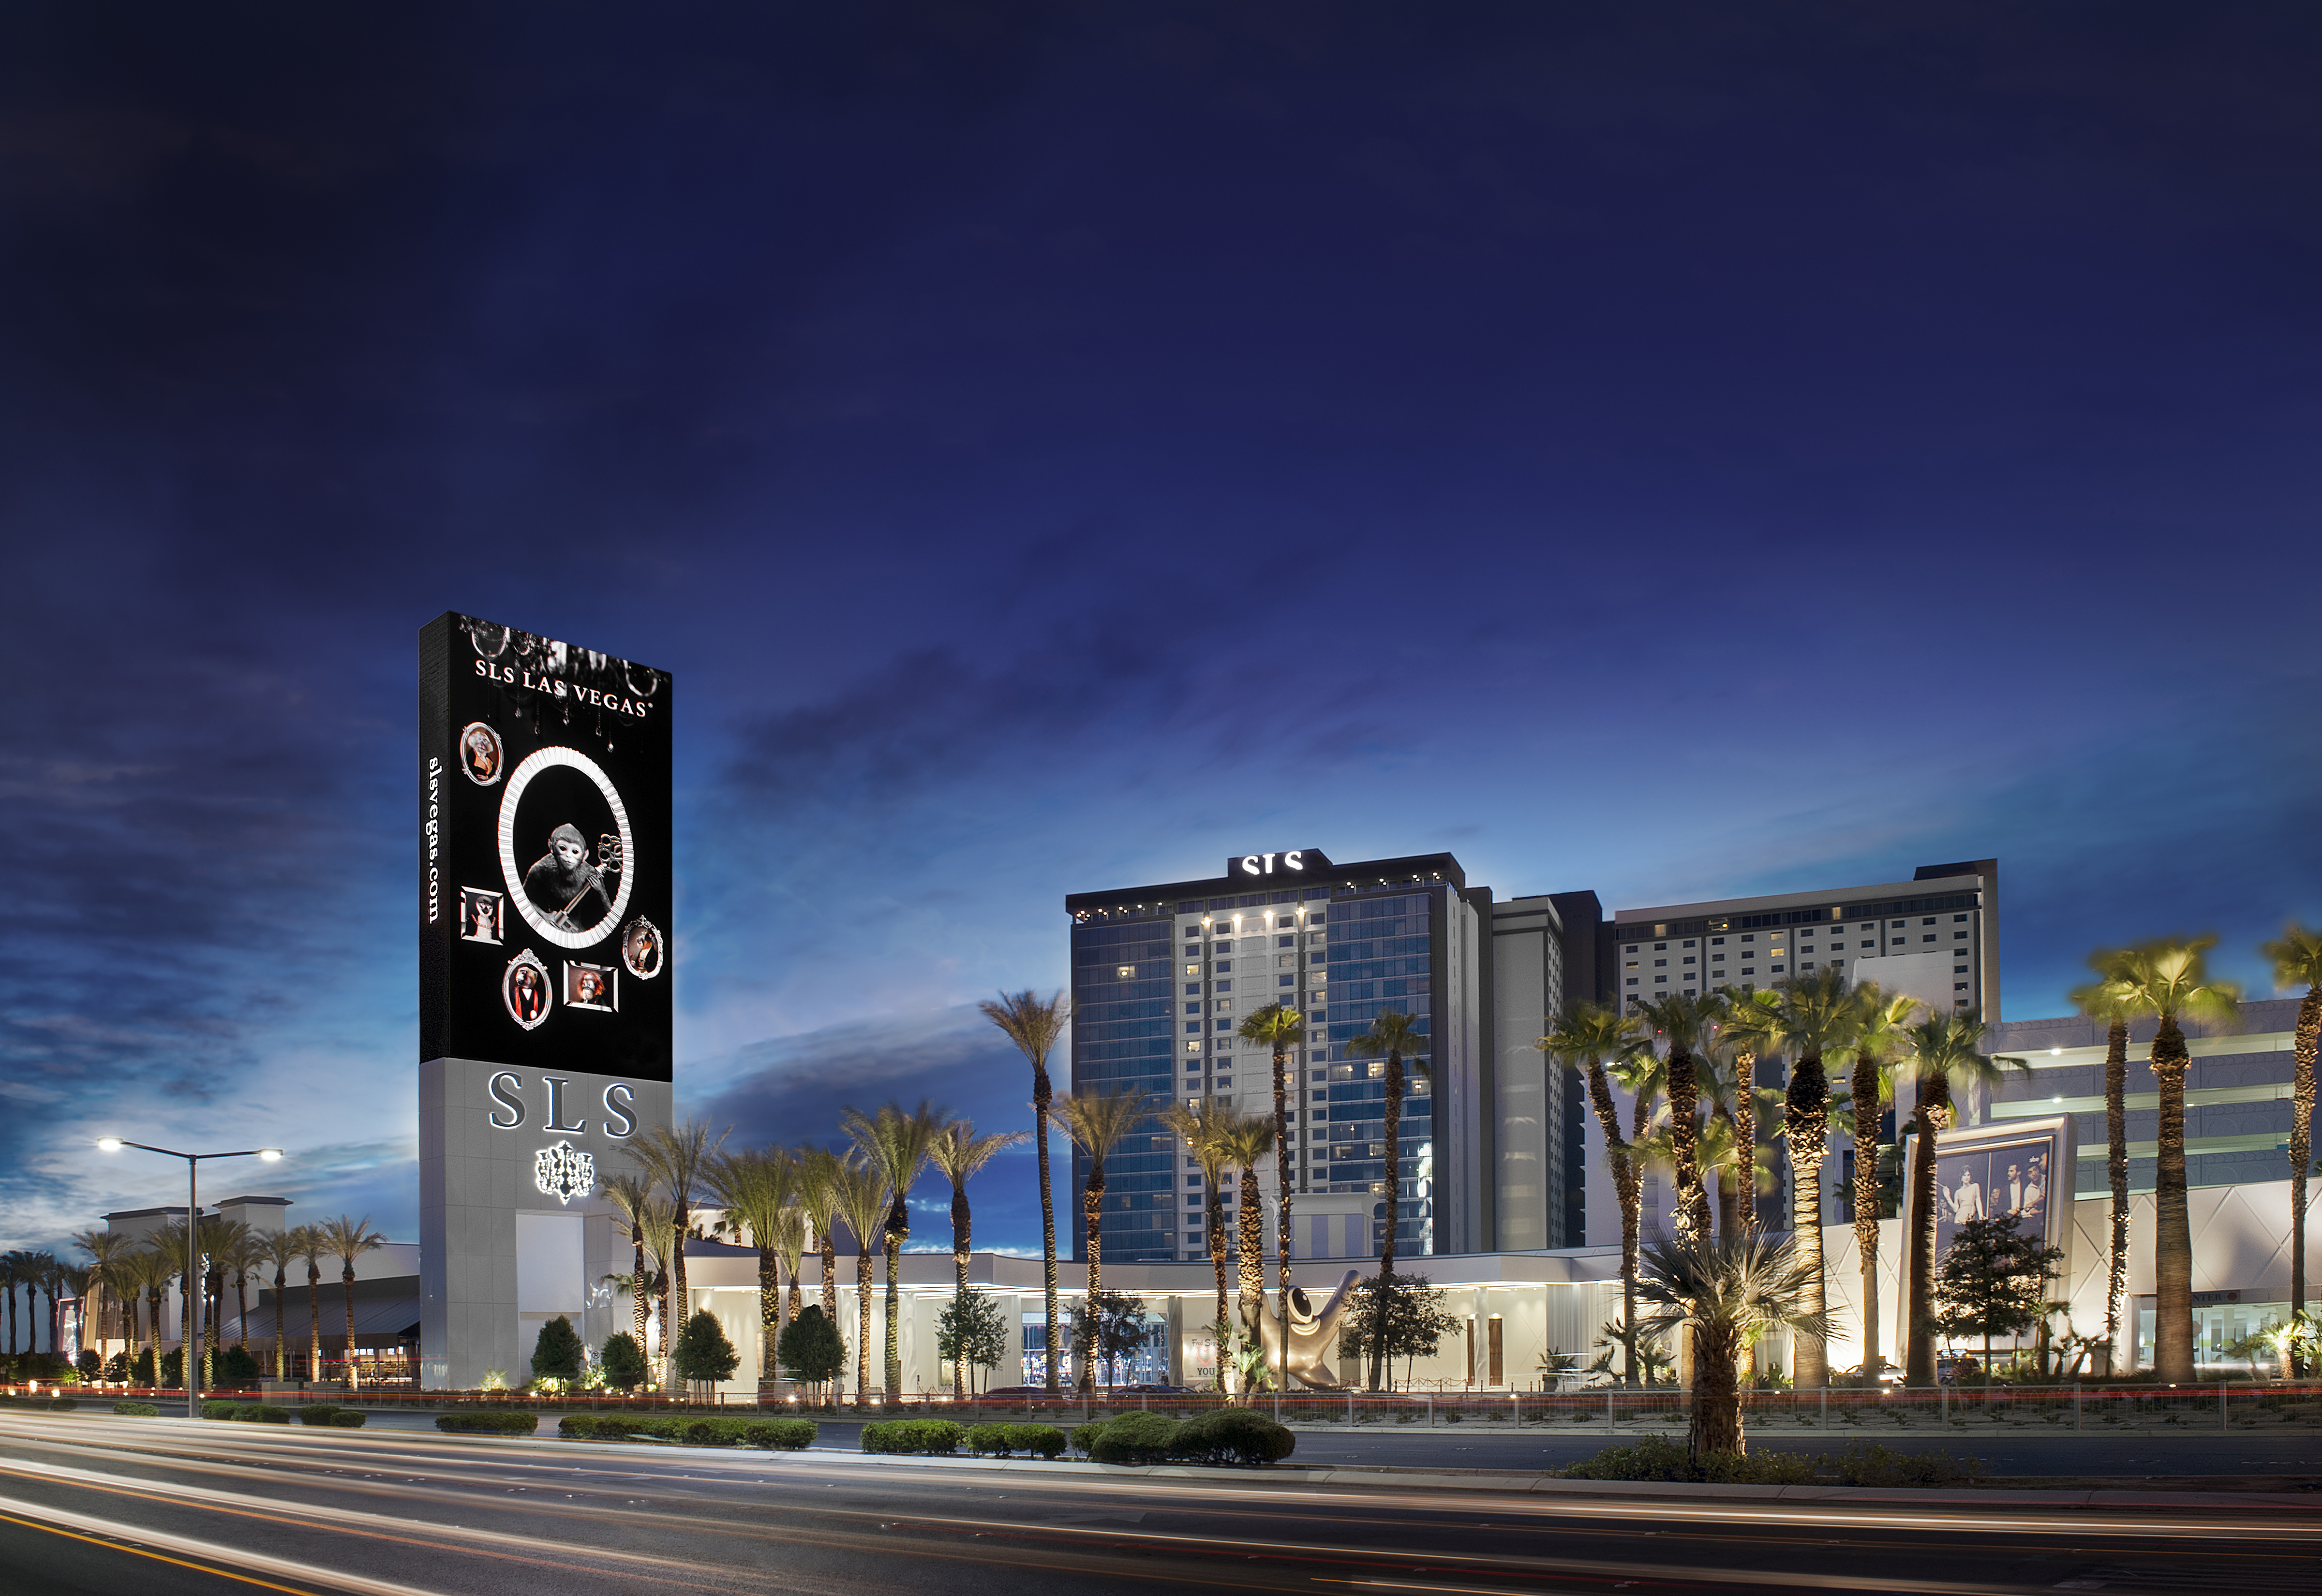 Starwood Hotels Resorts Significantly Expands Las Vegas Footprint With The Signing Of Sls Business Wire